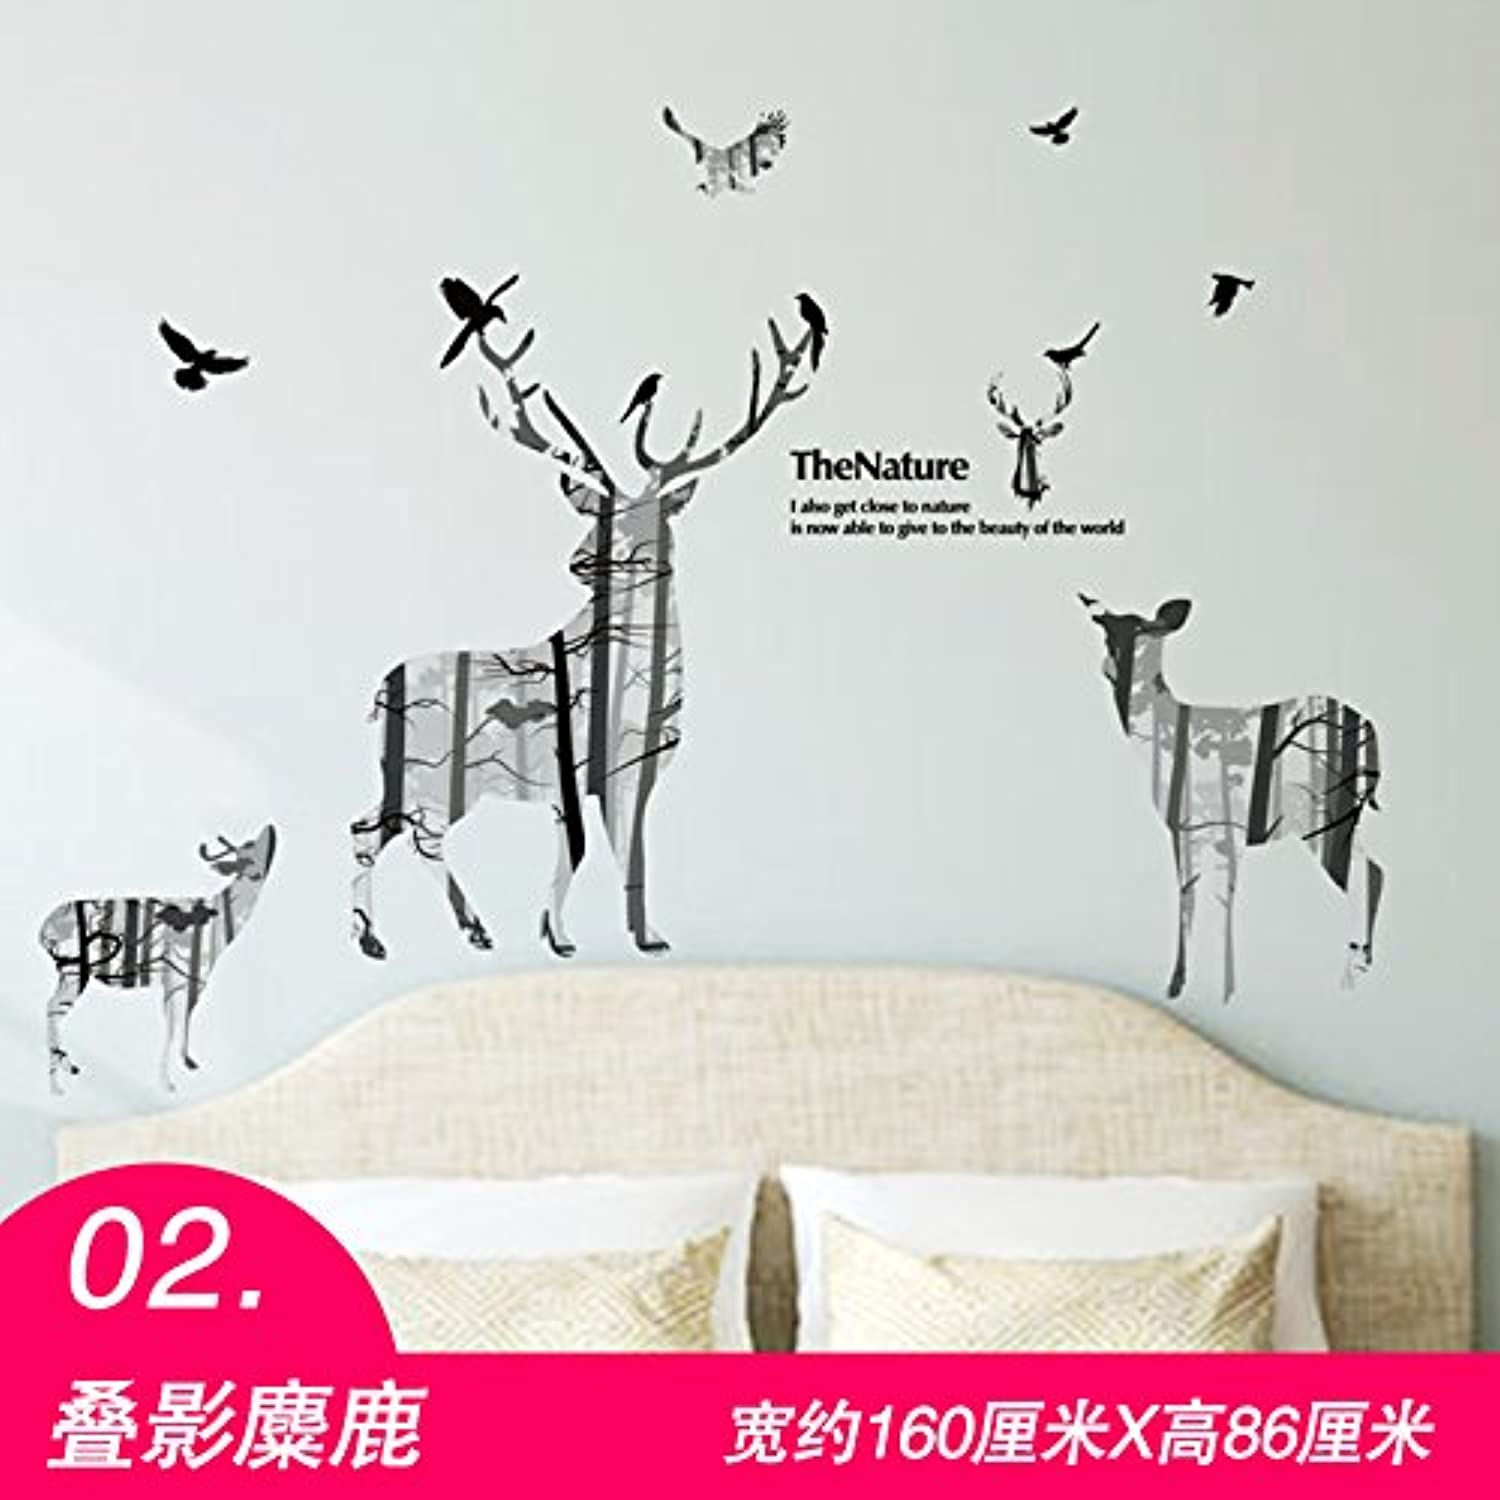 Znzbzt 3D Posters Wall Sticker Creative Poster Room Decor Personalized self Adhesive Wallpaper, Elk